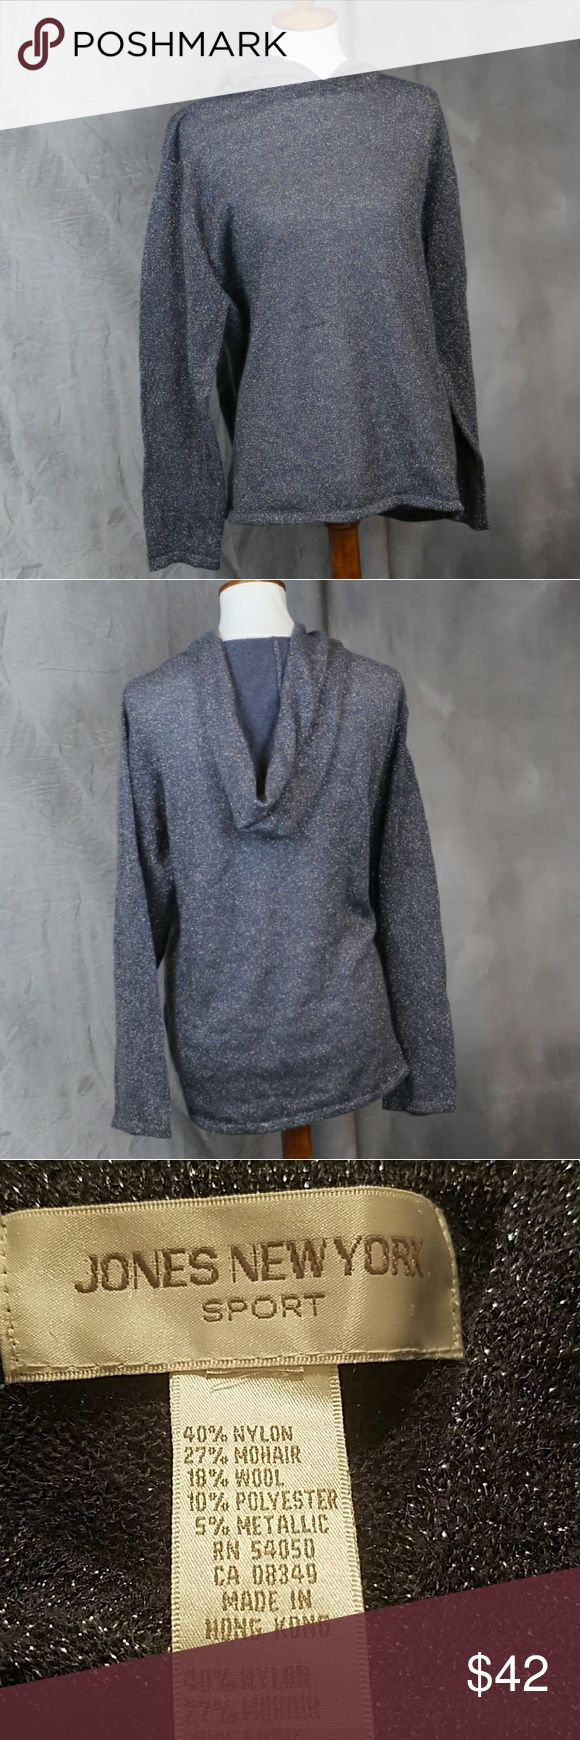 Jones New York dusty blue metallic silver hoodie L Jones New York dusty blue metallic silver hoodie L. Wool blend. Excellent condition aside from a missing size tag - this is a Large. Jones New York Tops Sweatshirts & Hoodies